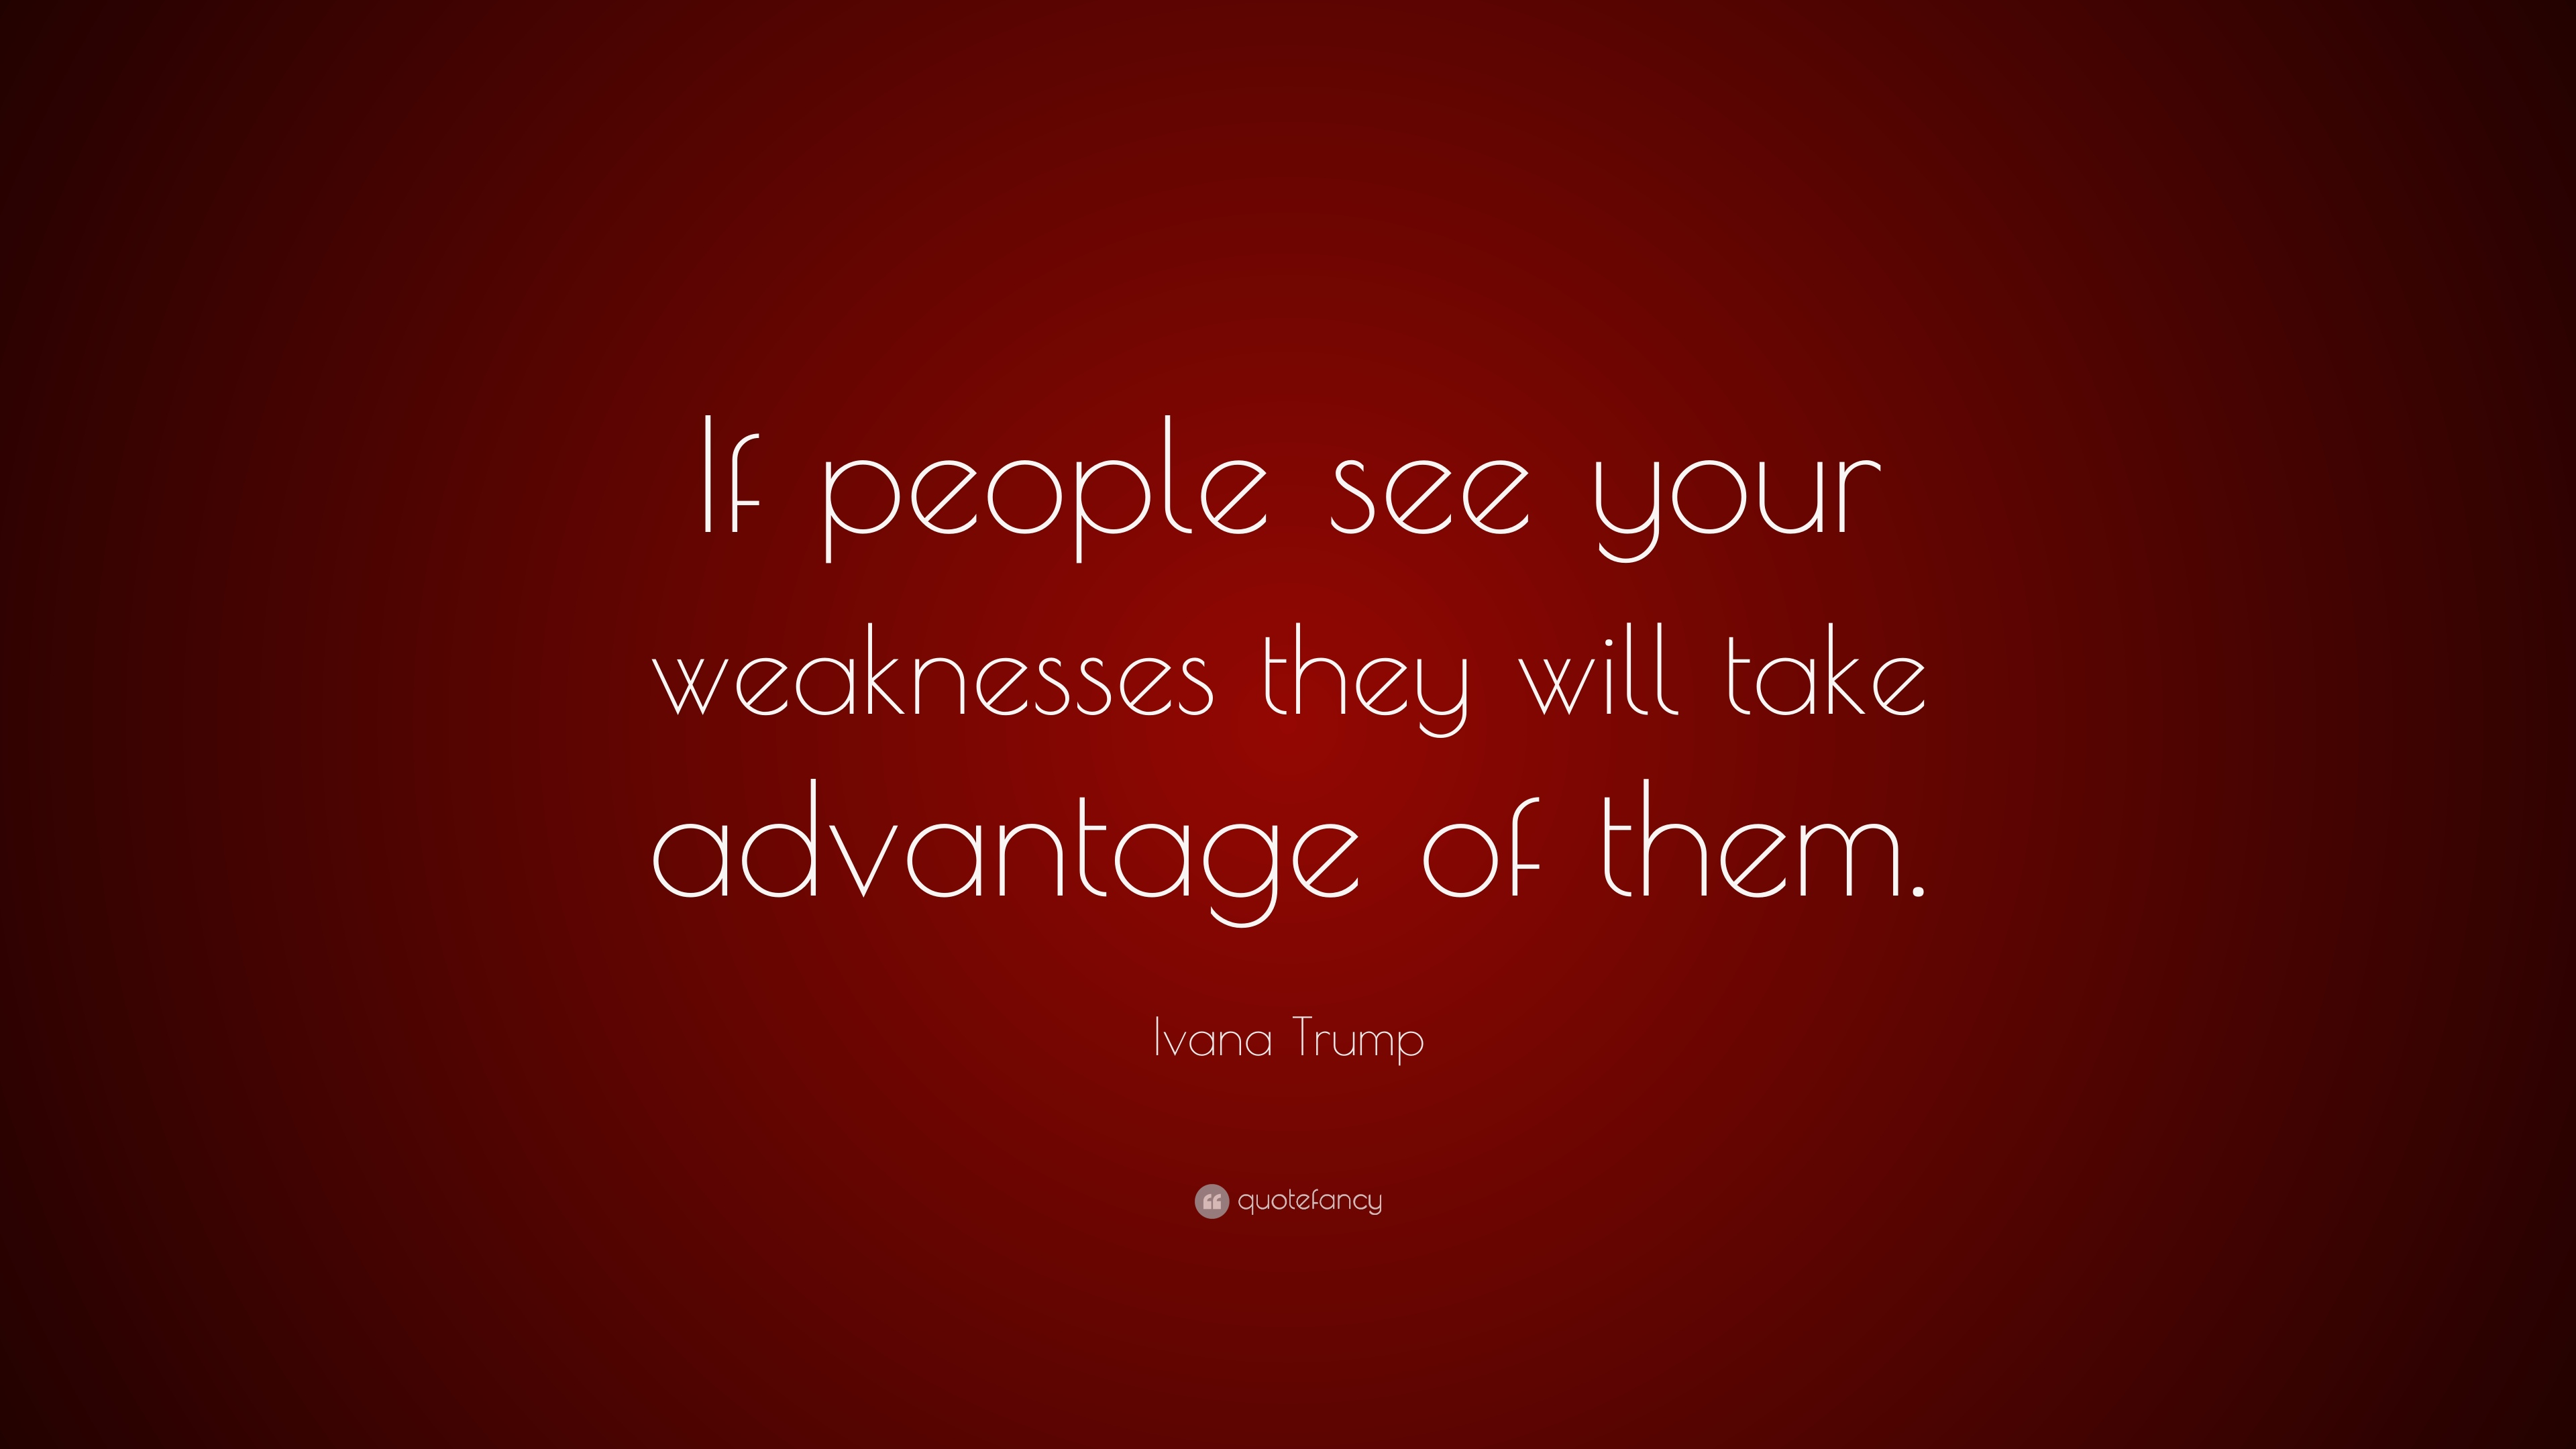 Ivana Trump Quote If People See Your Weaknesses They Will Take